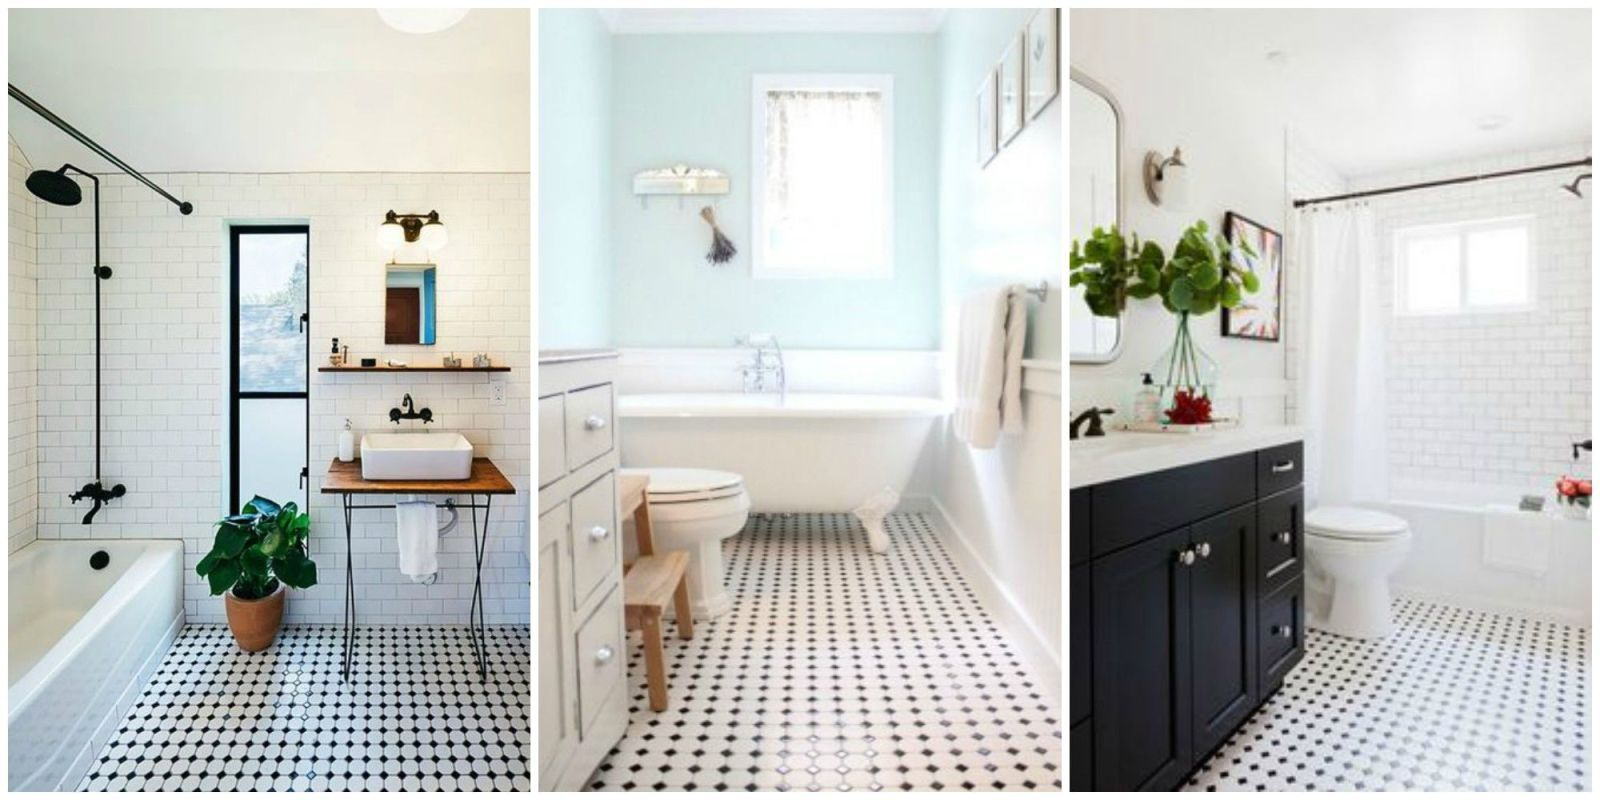 When it comes to classic design ideas black-and-white tile is king\u2014while it can fade in popularity it never really goes out of style. & Classic Black and White Tiled Bathroom Floors are Making a Huge Comeback